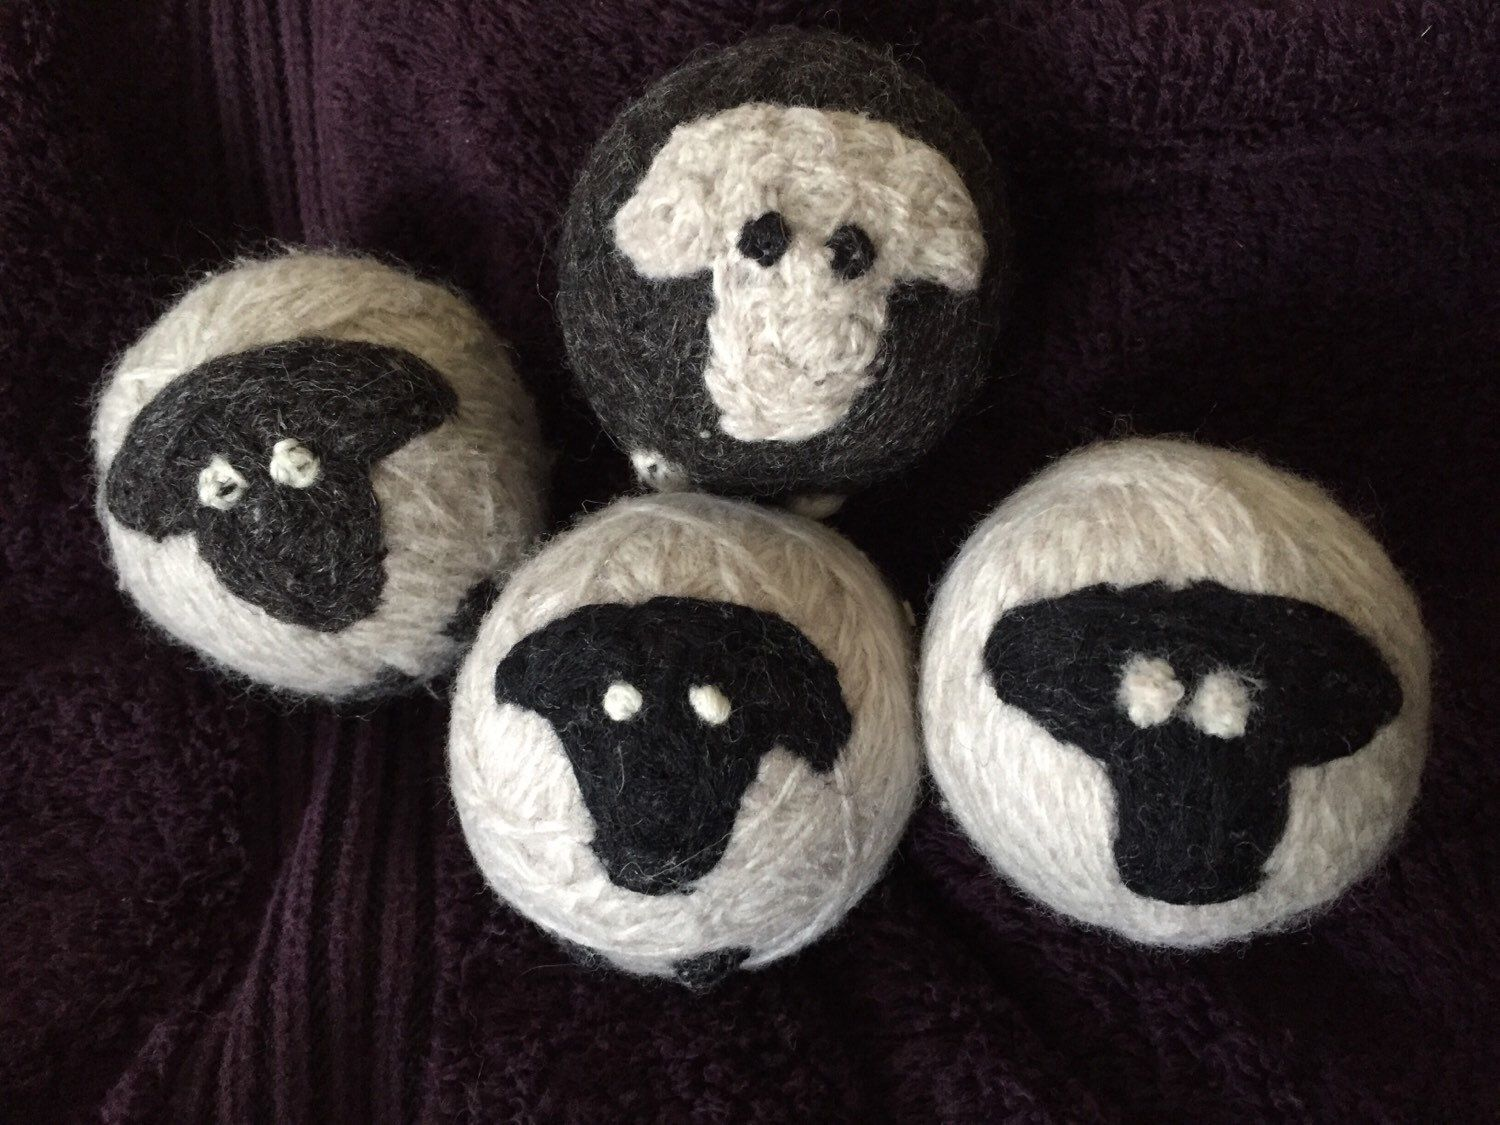 "4 Handmade 100% Wool Dryer Balls! ""The Black Sheep of the Family."" Natural Fabric Softener ! by DeesAndMees on Etsy https://www.etsy.com/listing/277649700/4-handmade-100-wool-dryer-balls-the"